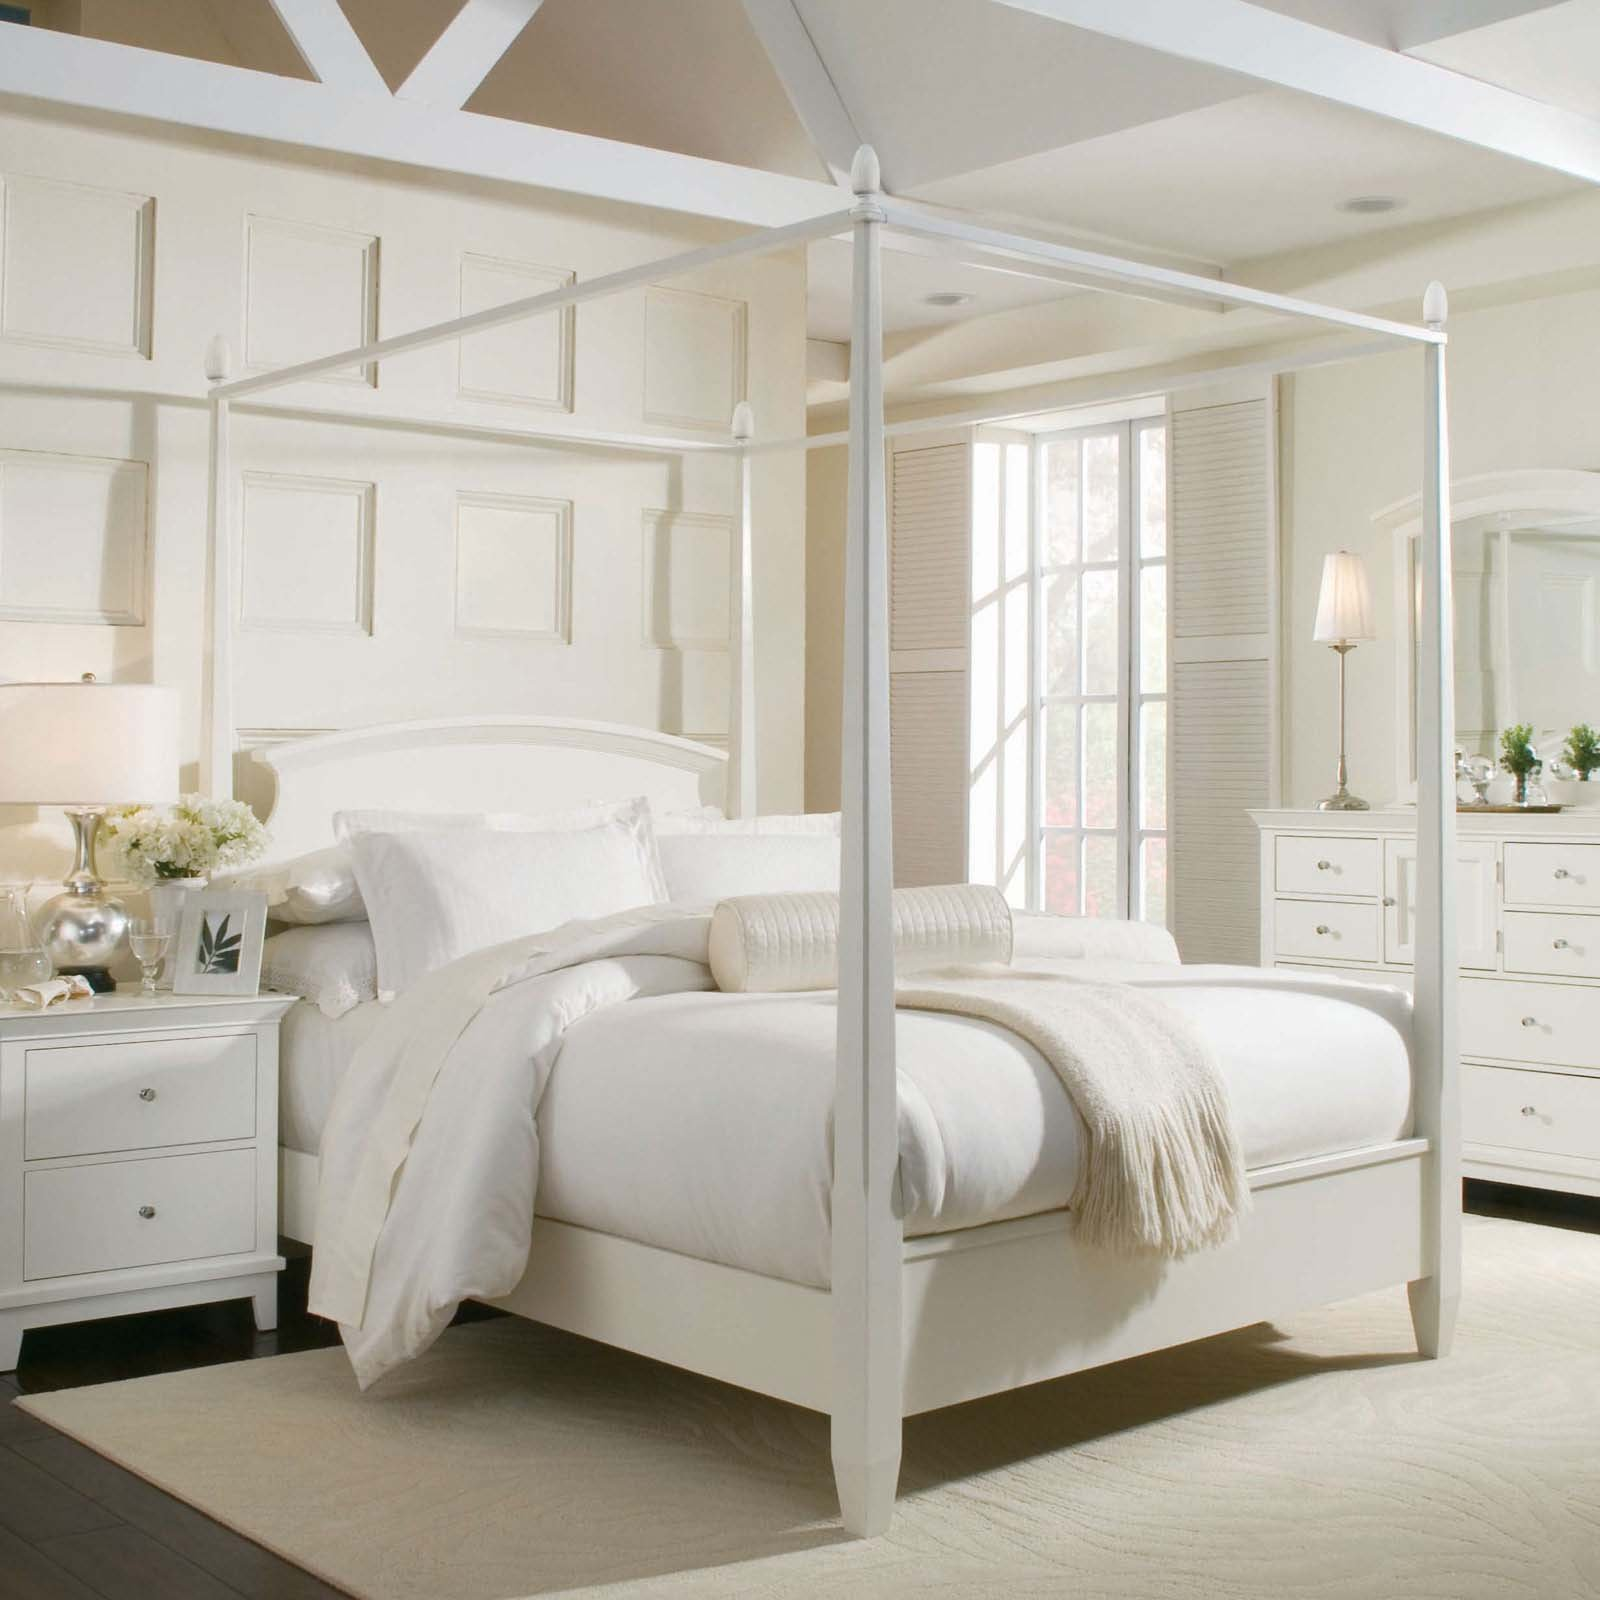 Furnishings And Supplies Best White Canopy Bed Queen